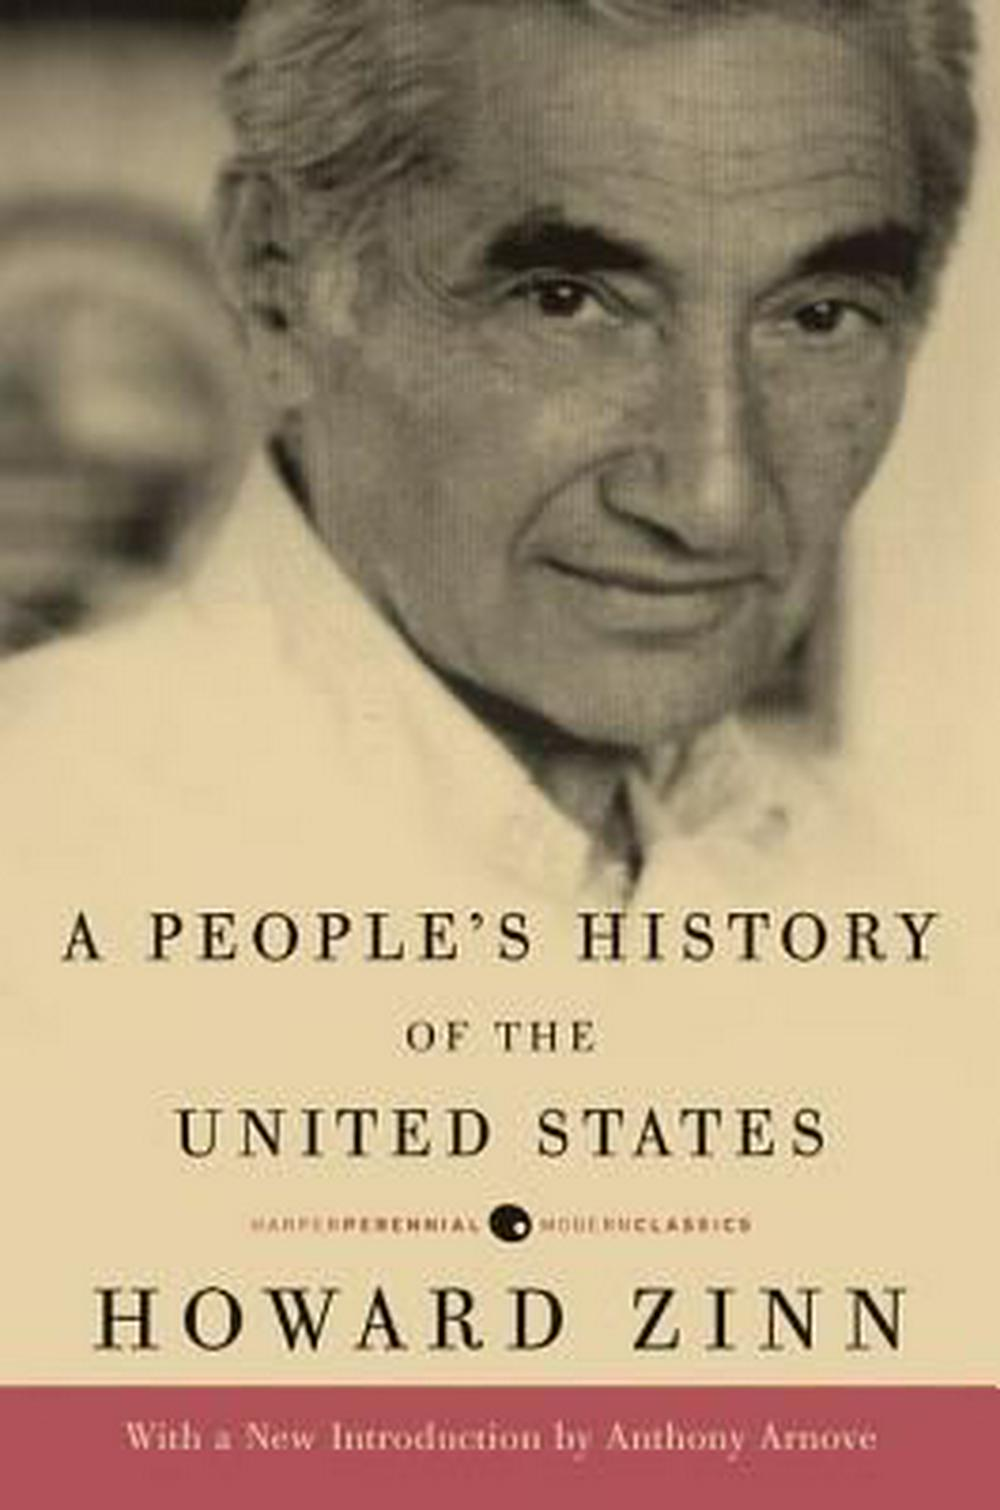 A People's History of the United States by Howard Zinn, ISBN: 9780061965593